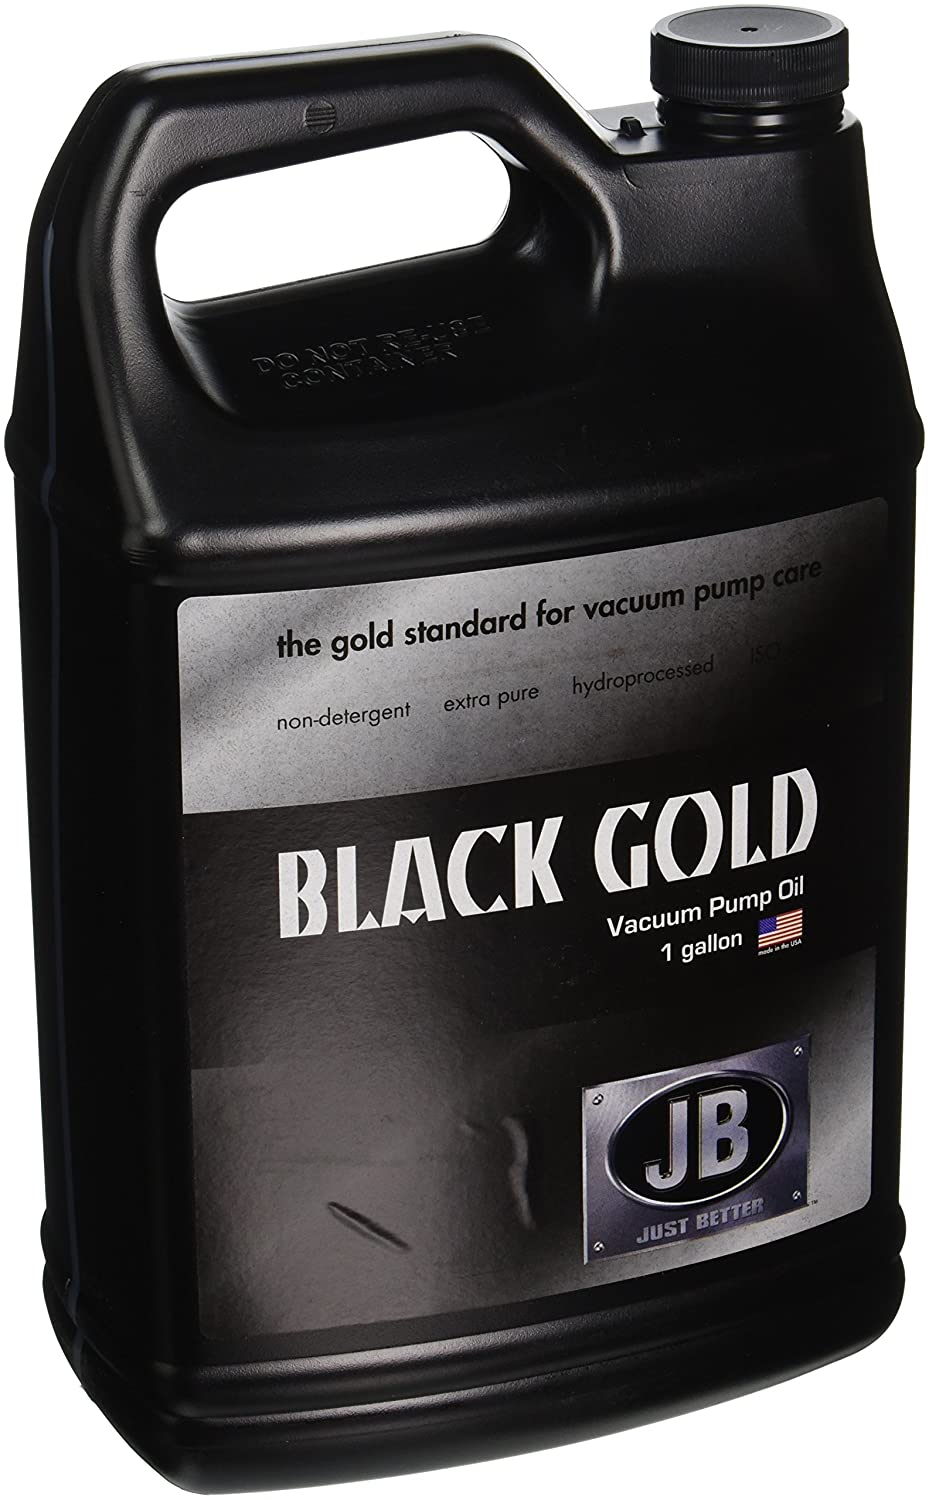 JB Industries DVO-24 Bottle of Black Gold Vacuum Pump Oil, 1 gallon - GIDDS-2463009